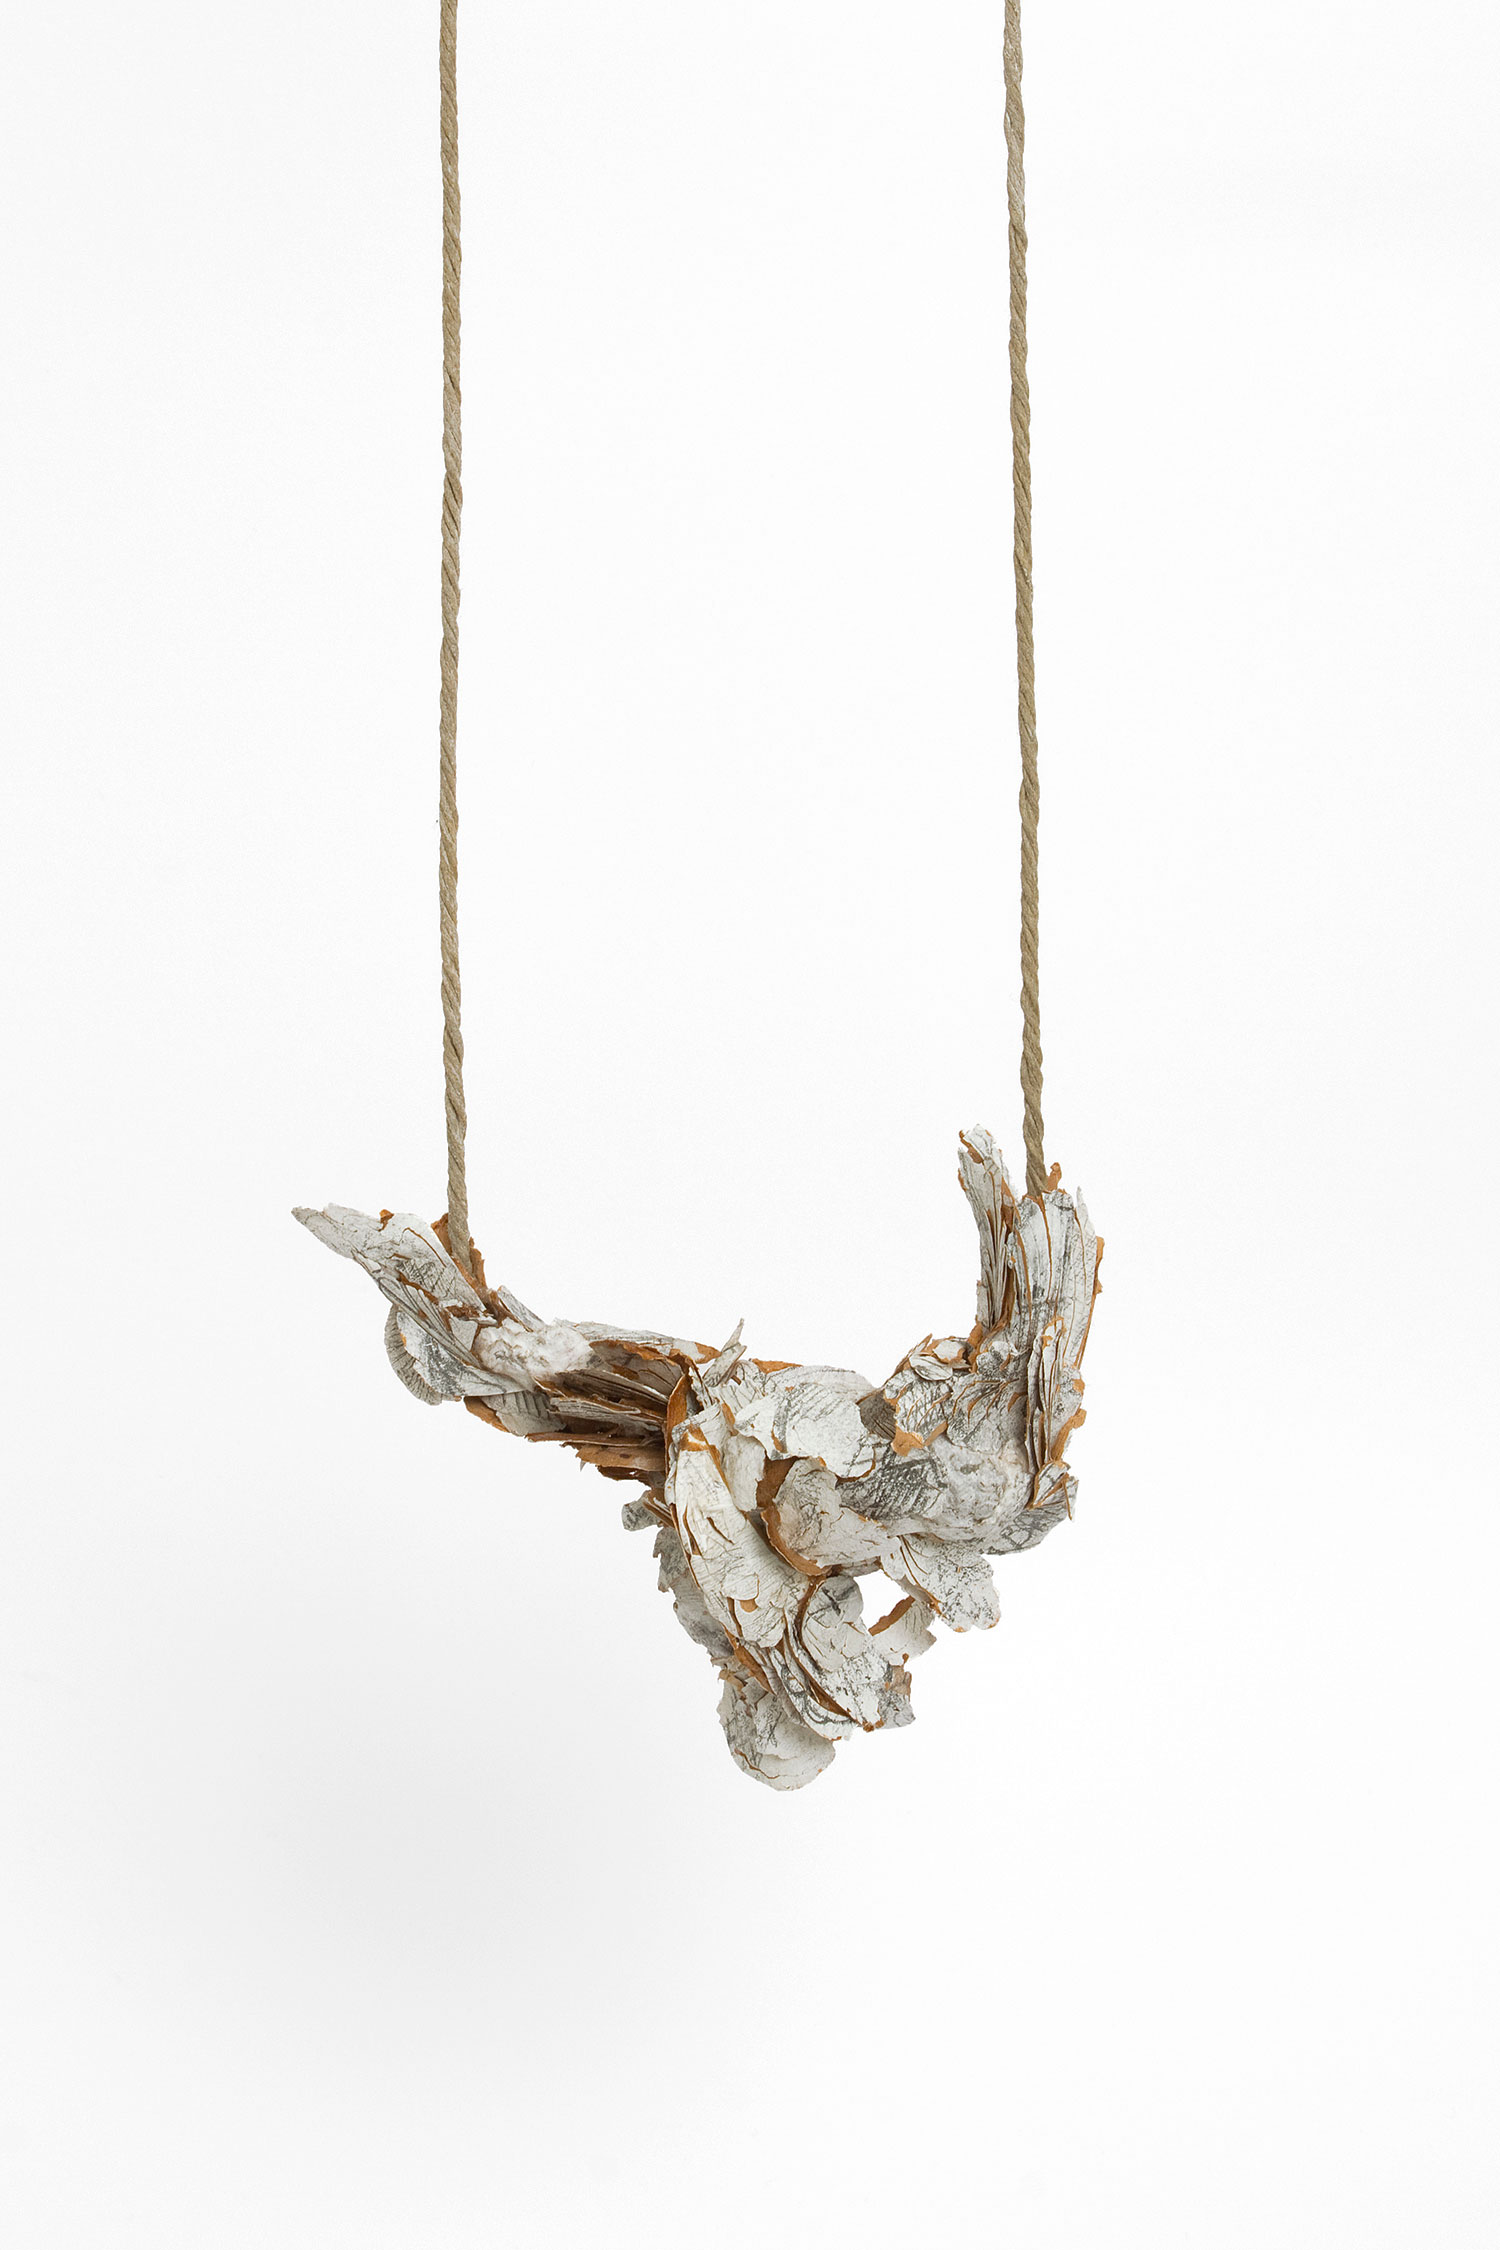 untitled |    Neckpiece  |   2013  |   Treated cellulose, news paper, graphite, paint, glue, silver, cotton string  |   95X100X45 mm